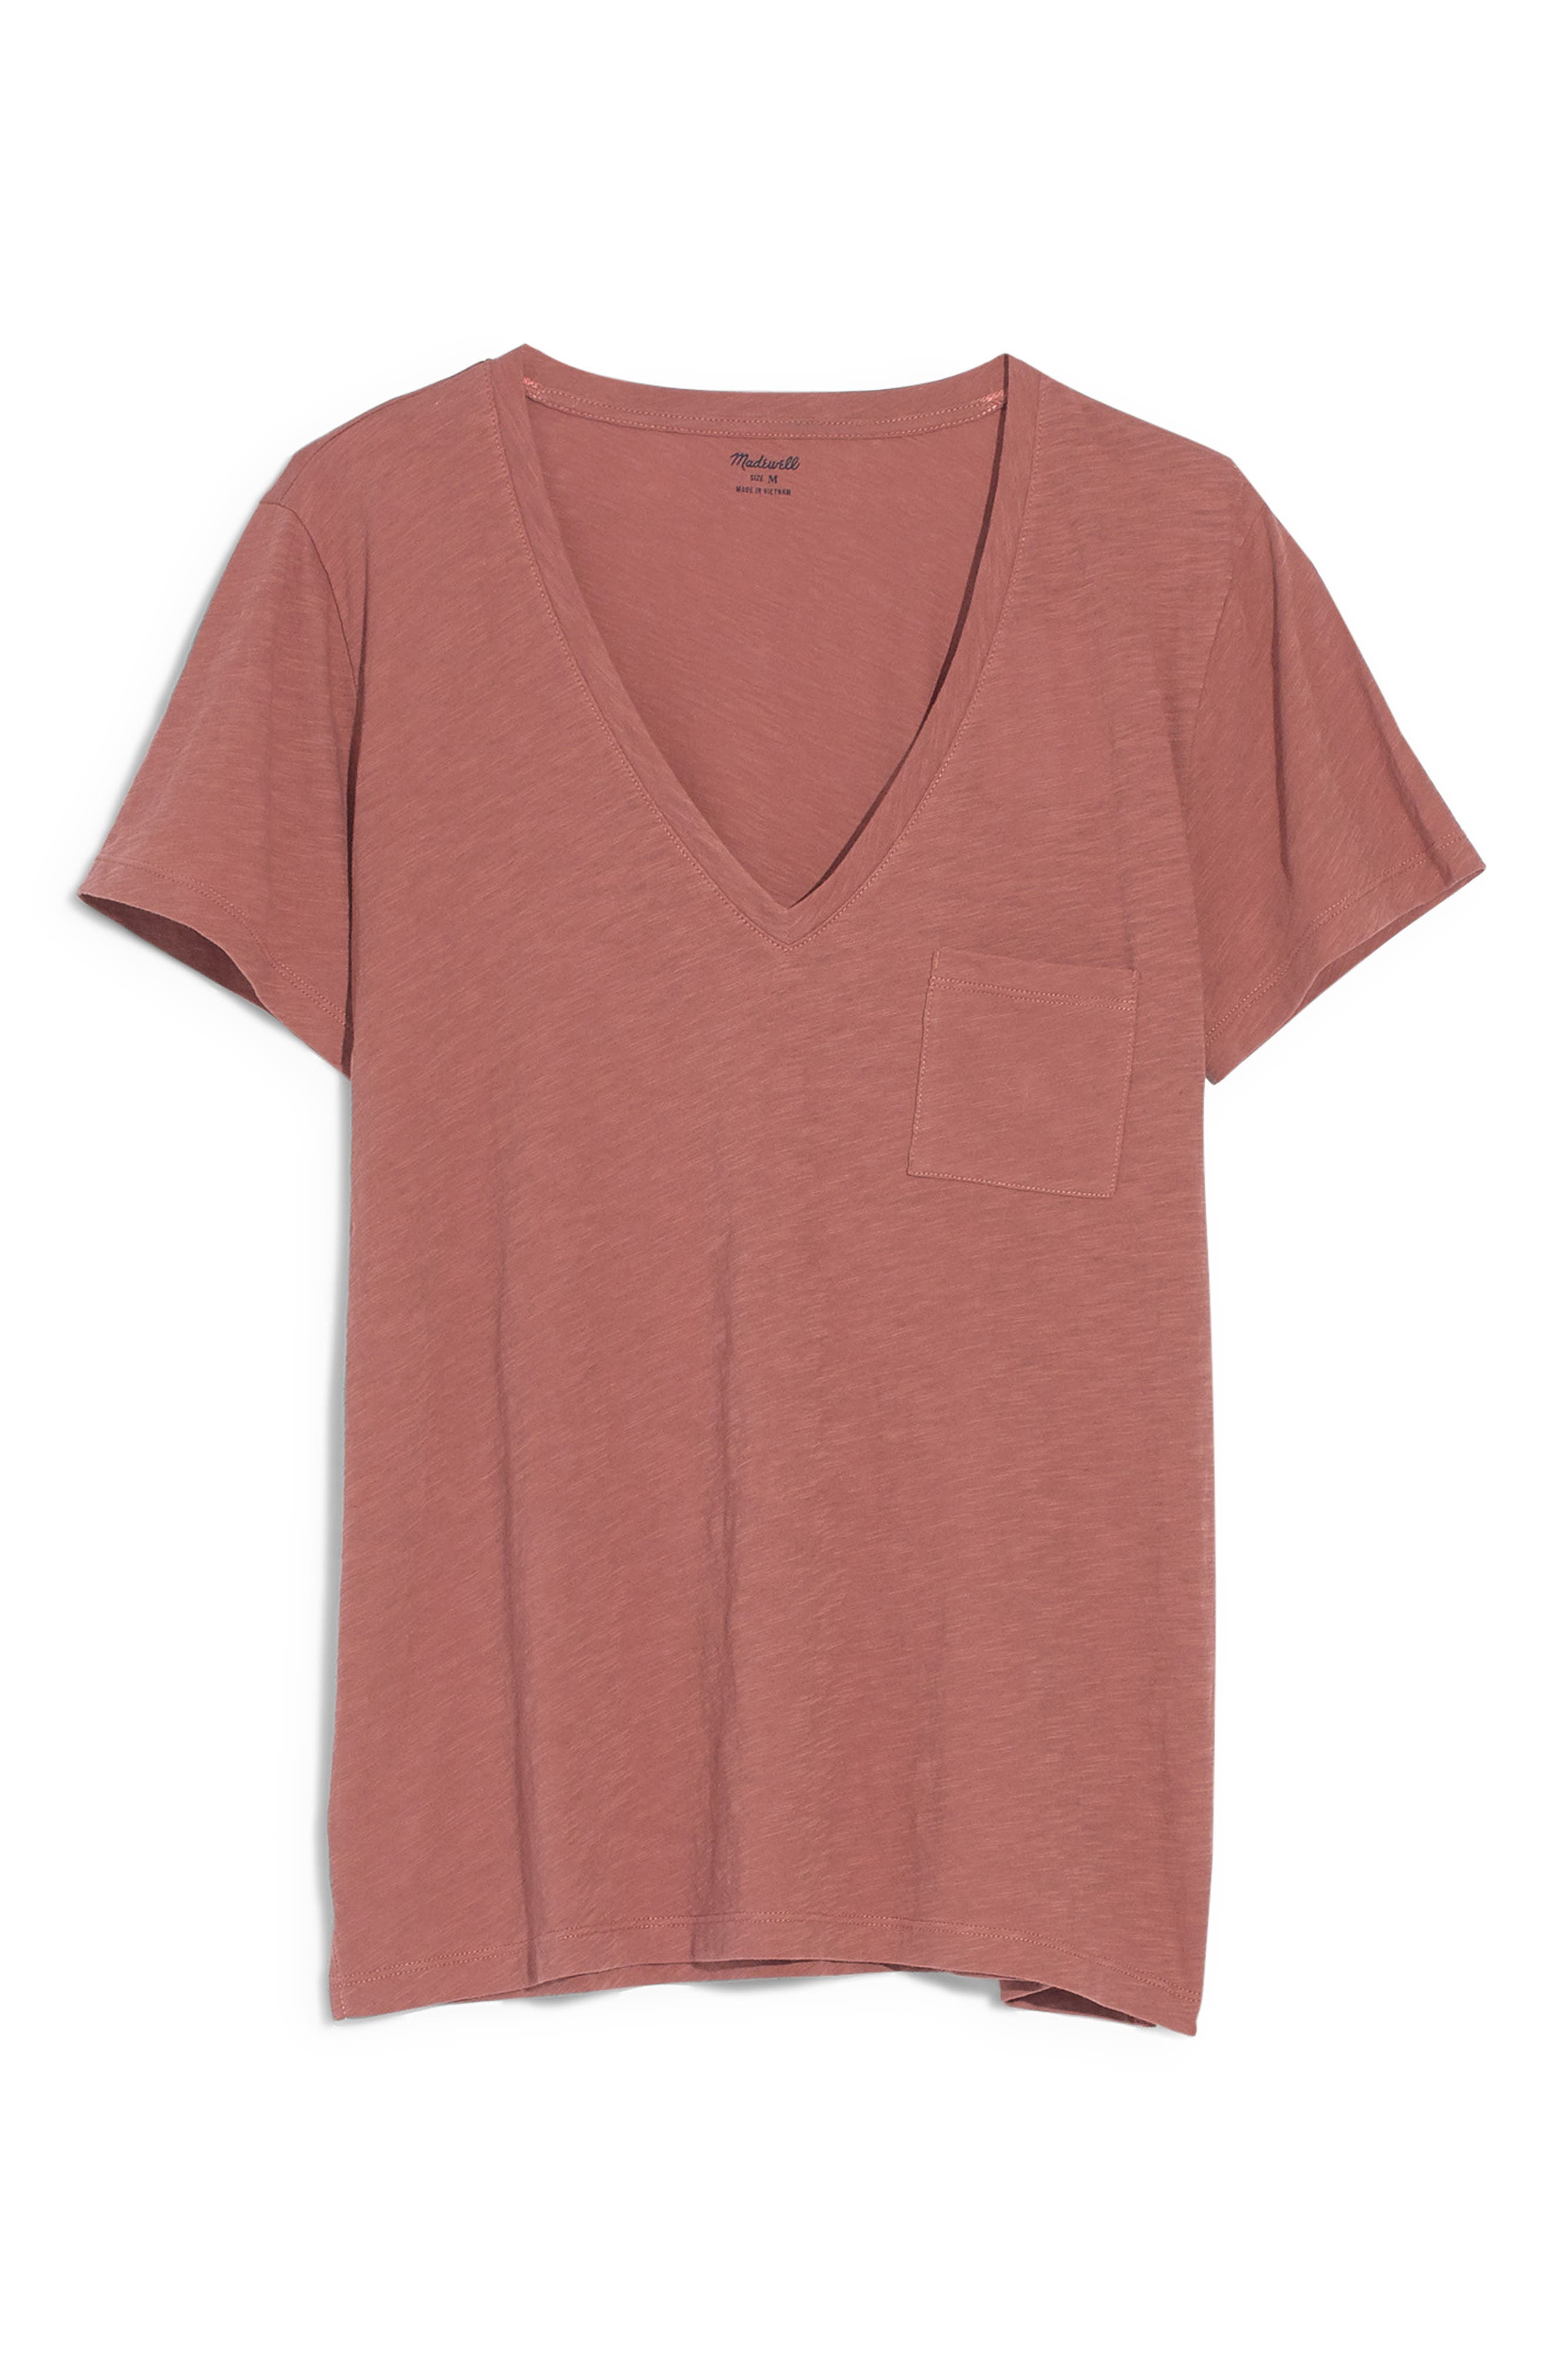 MADEWELL, Whisper Cotton V-Neck Pocket Tee, Alternate thumbnail 6, color, AUTUMN BERRY